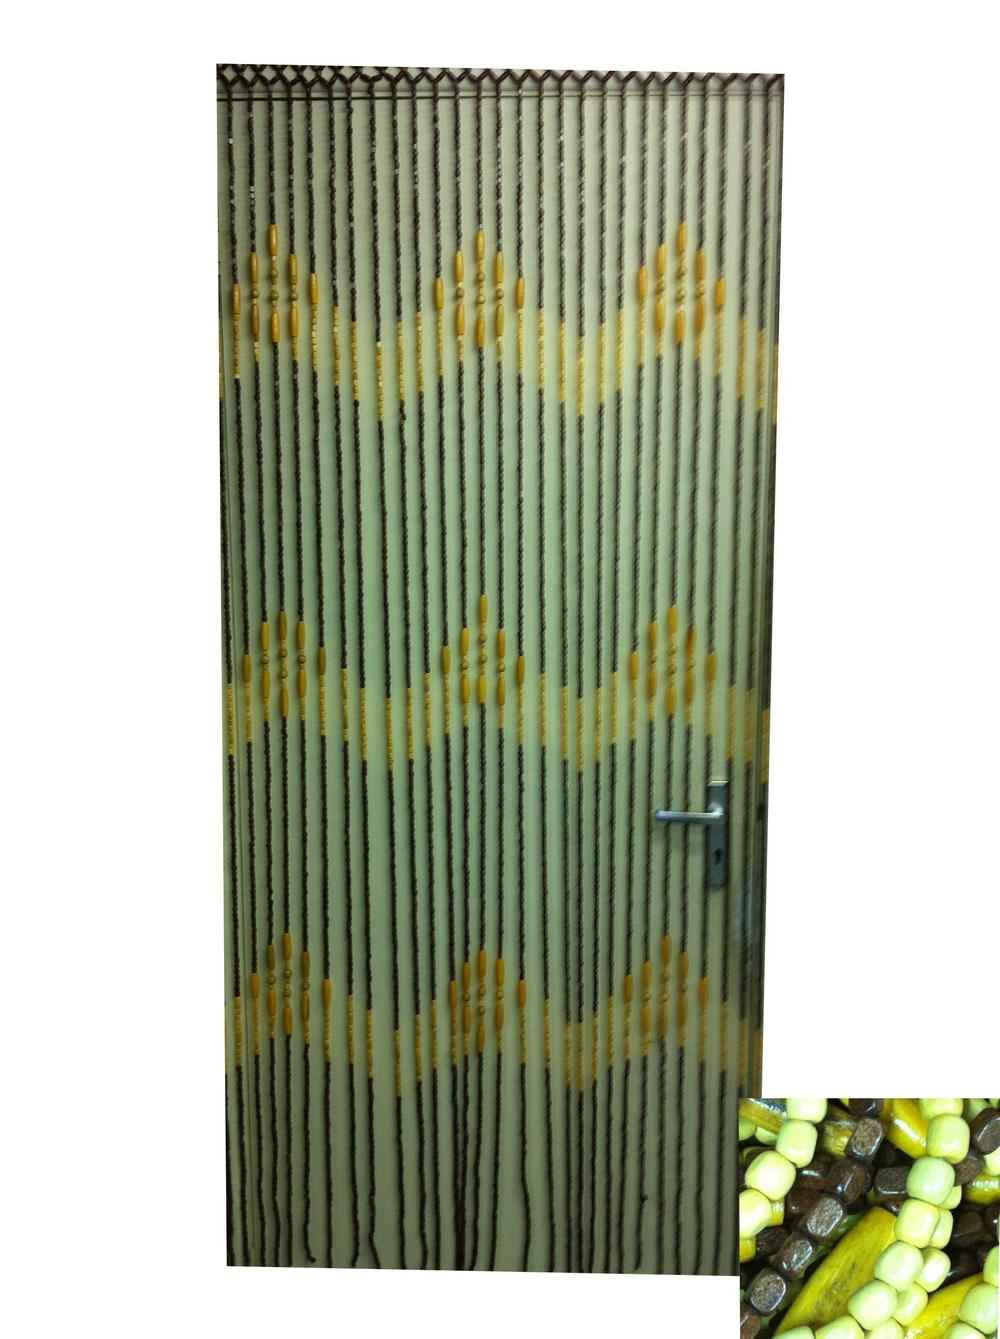 Charming Door Bead Curtains 2 ...